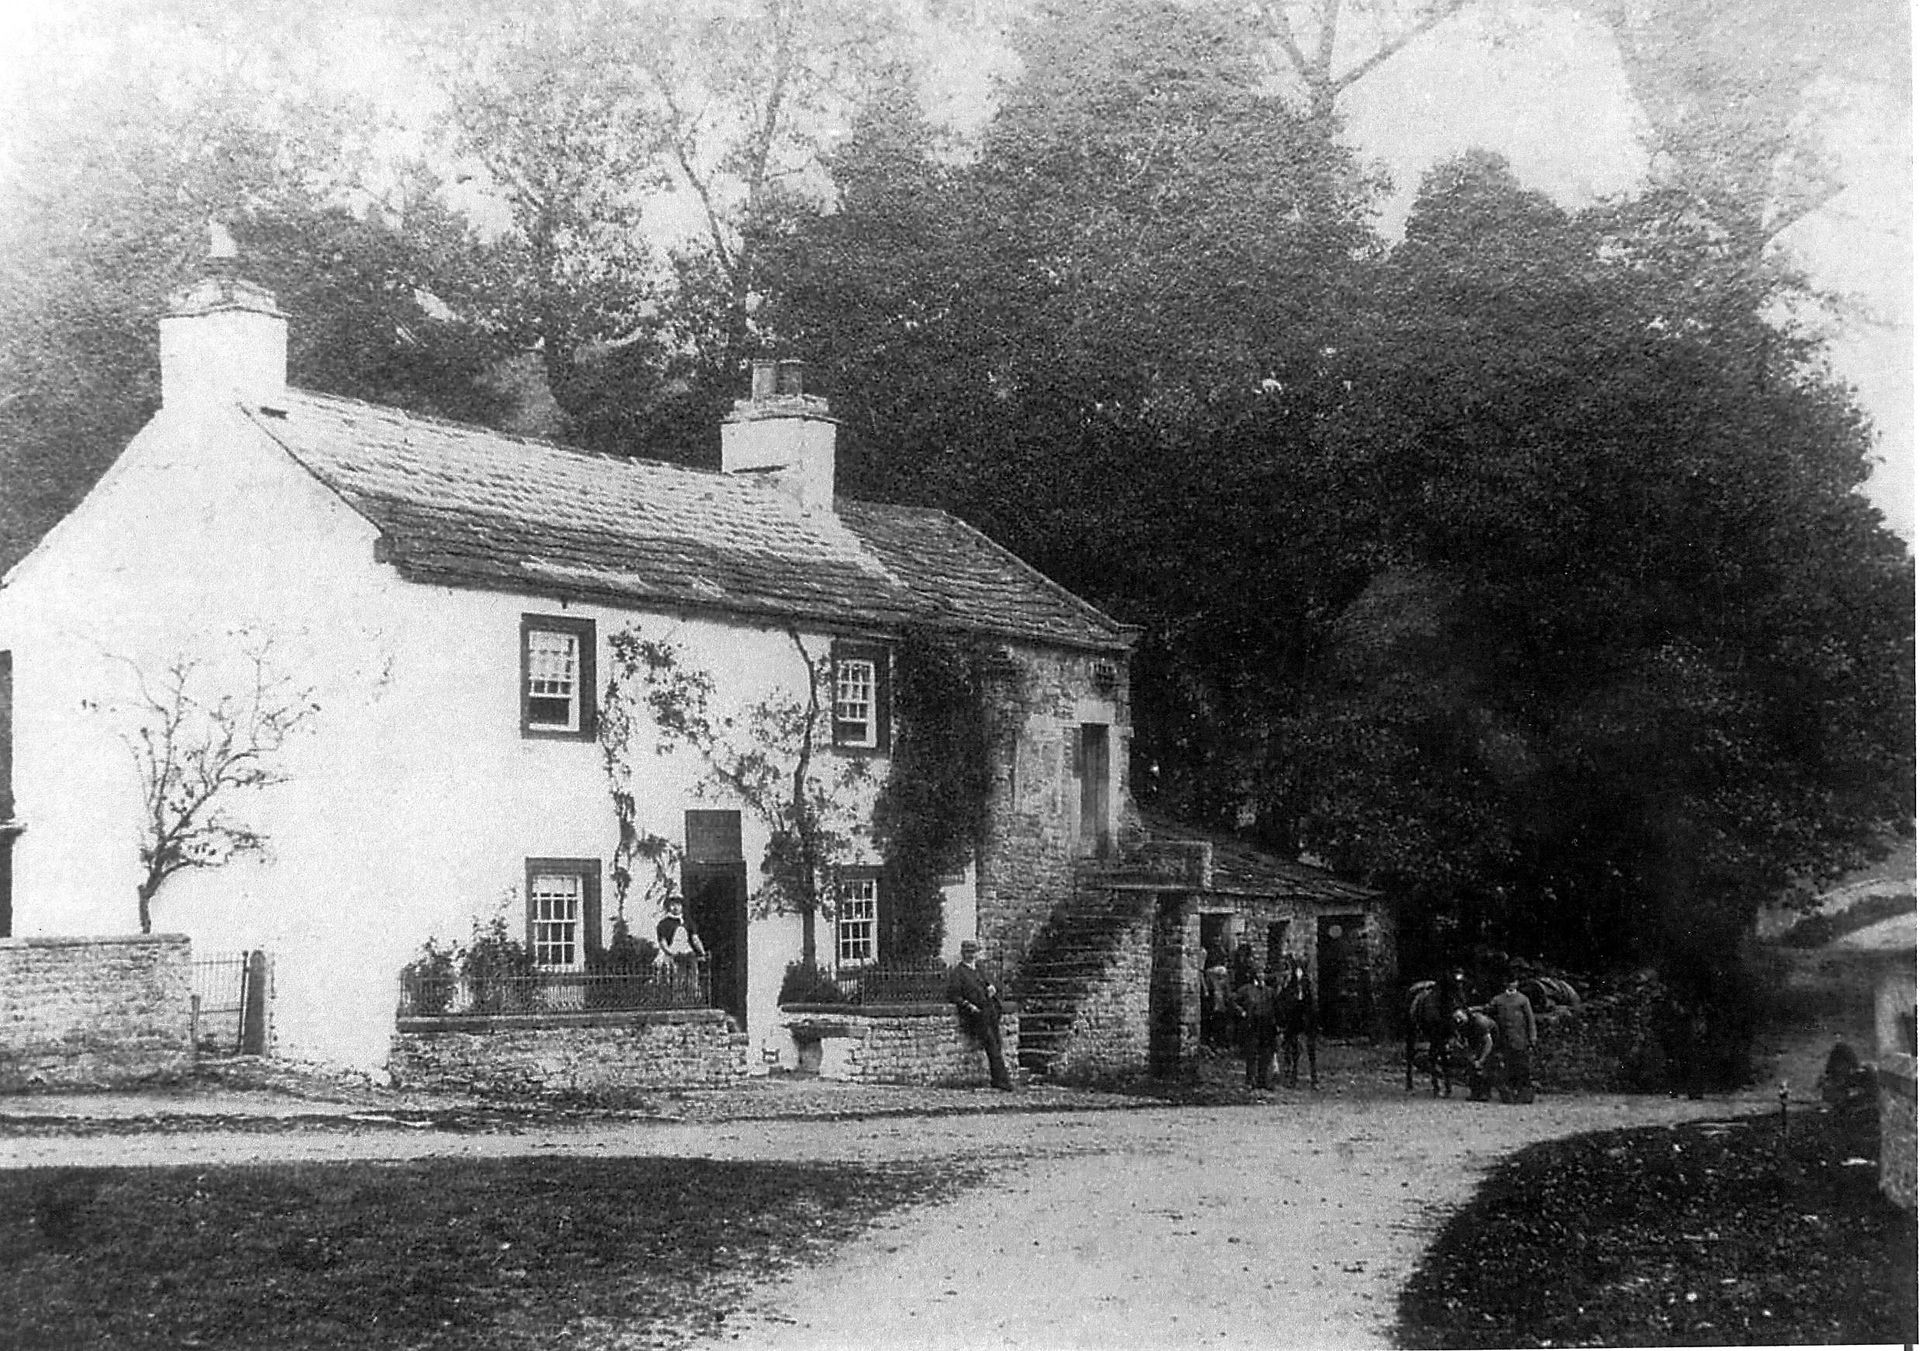 Thoralby shop and stables, pre 1887, courtesy of G.V. & A. Sadler.